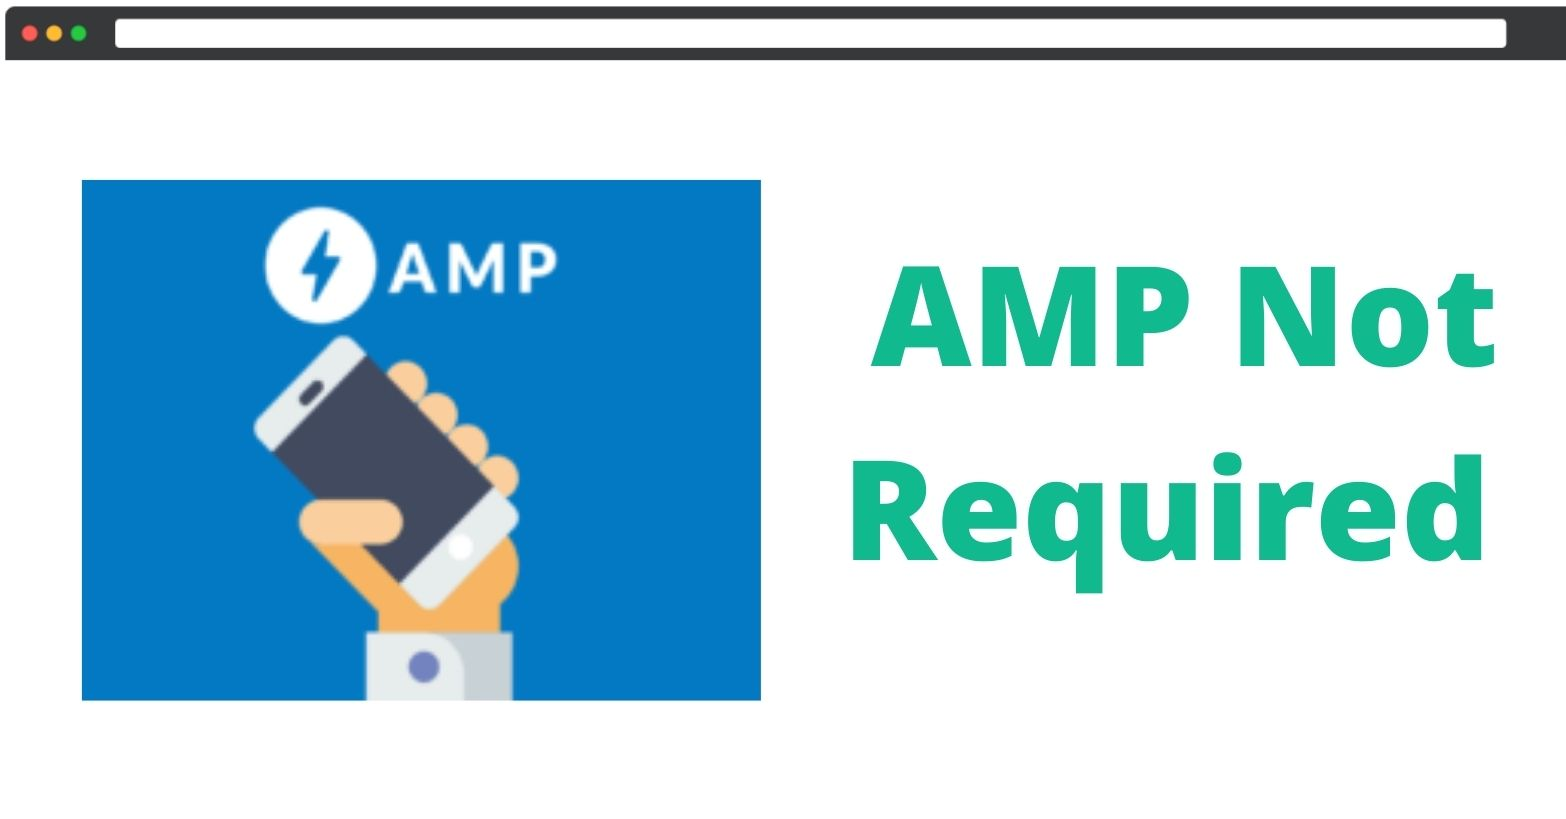 AMP Not Required